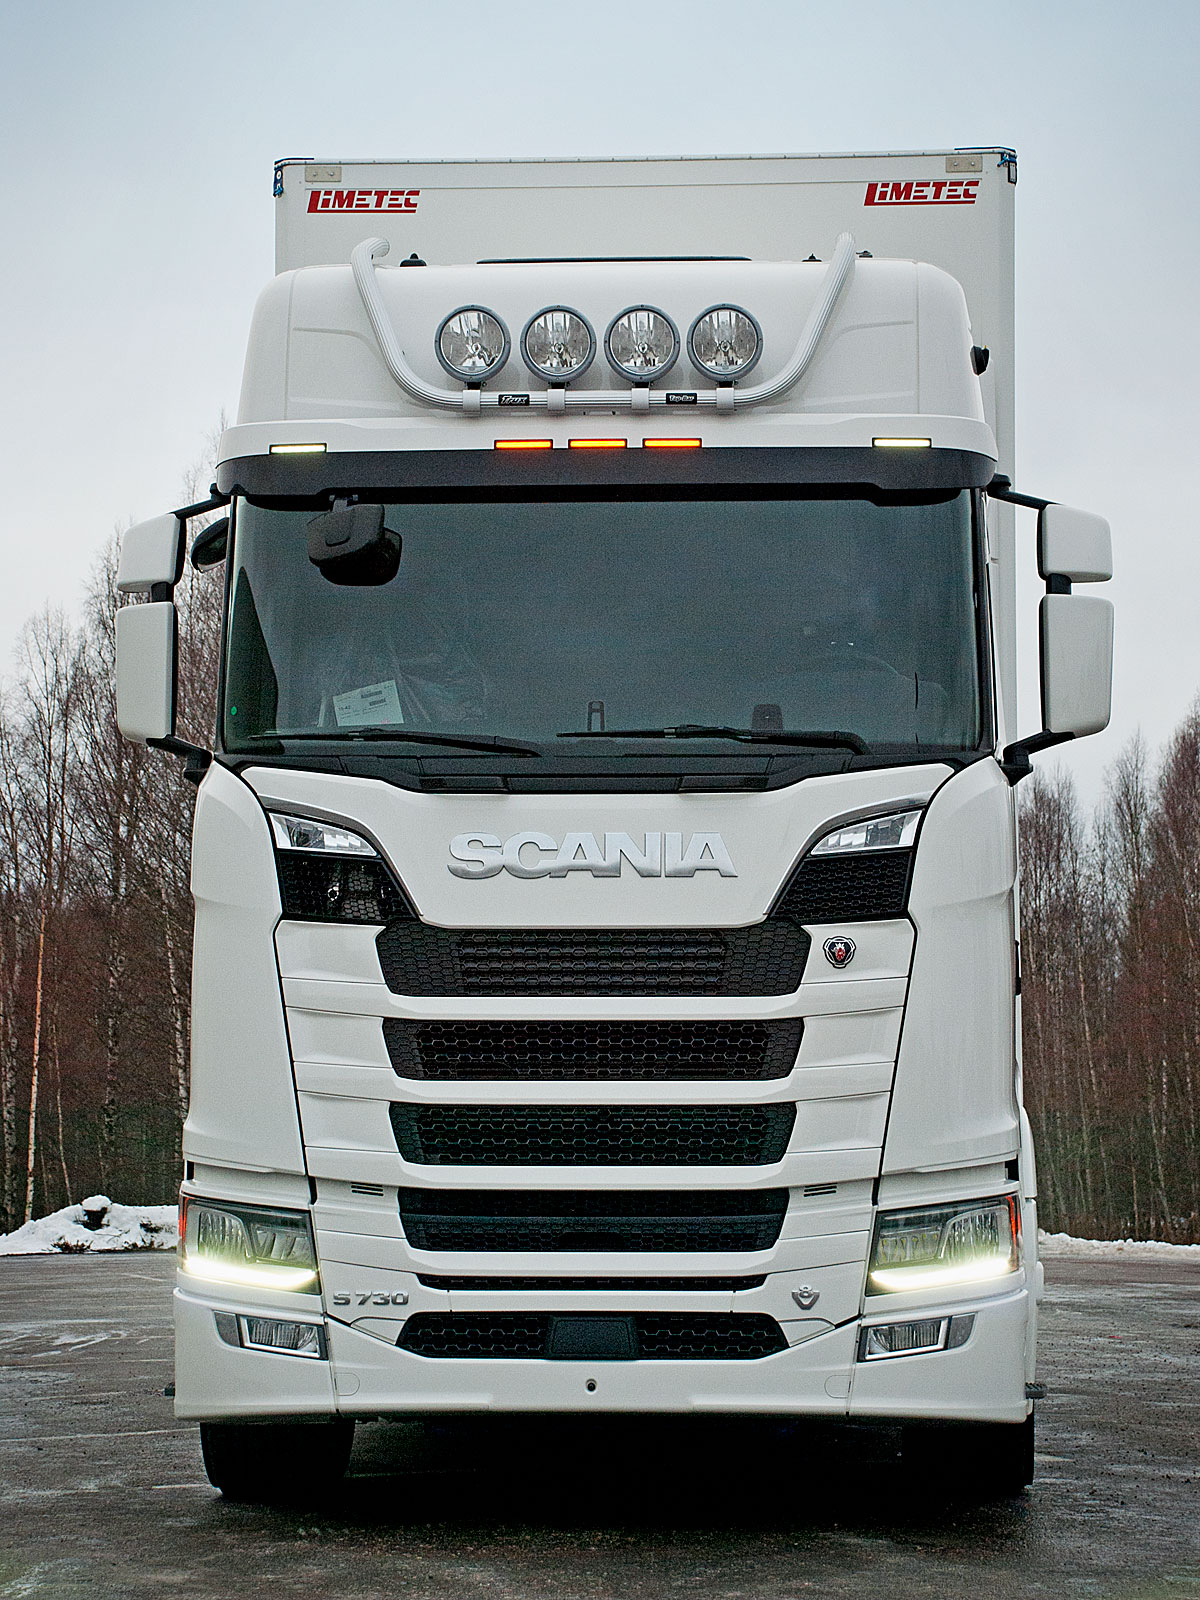 Next Bar One More Trux Top Bar For The New Scania Trux